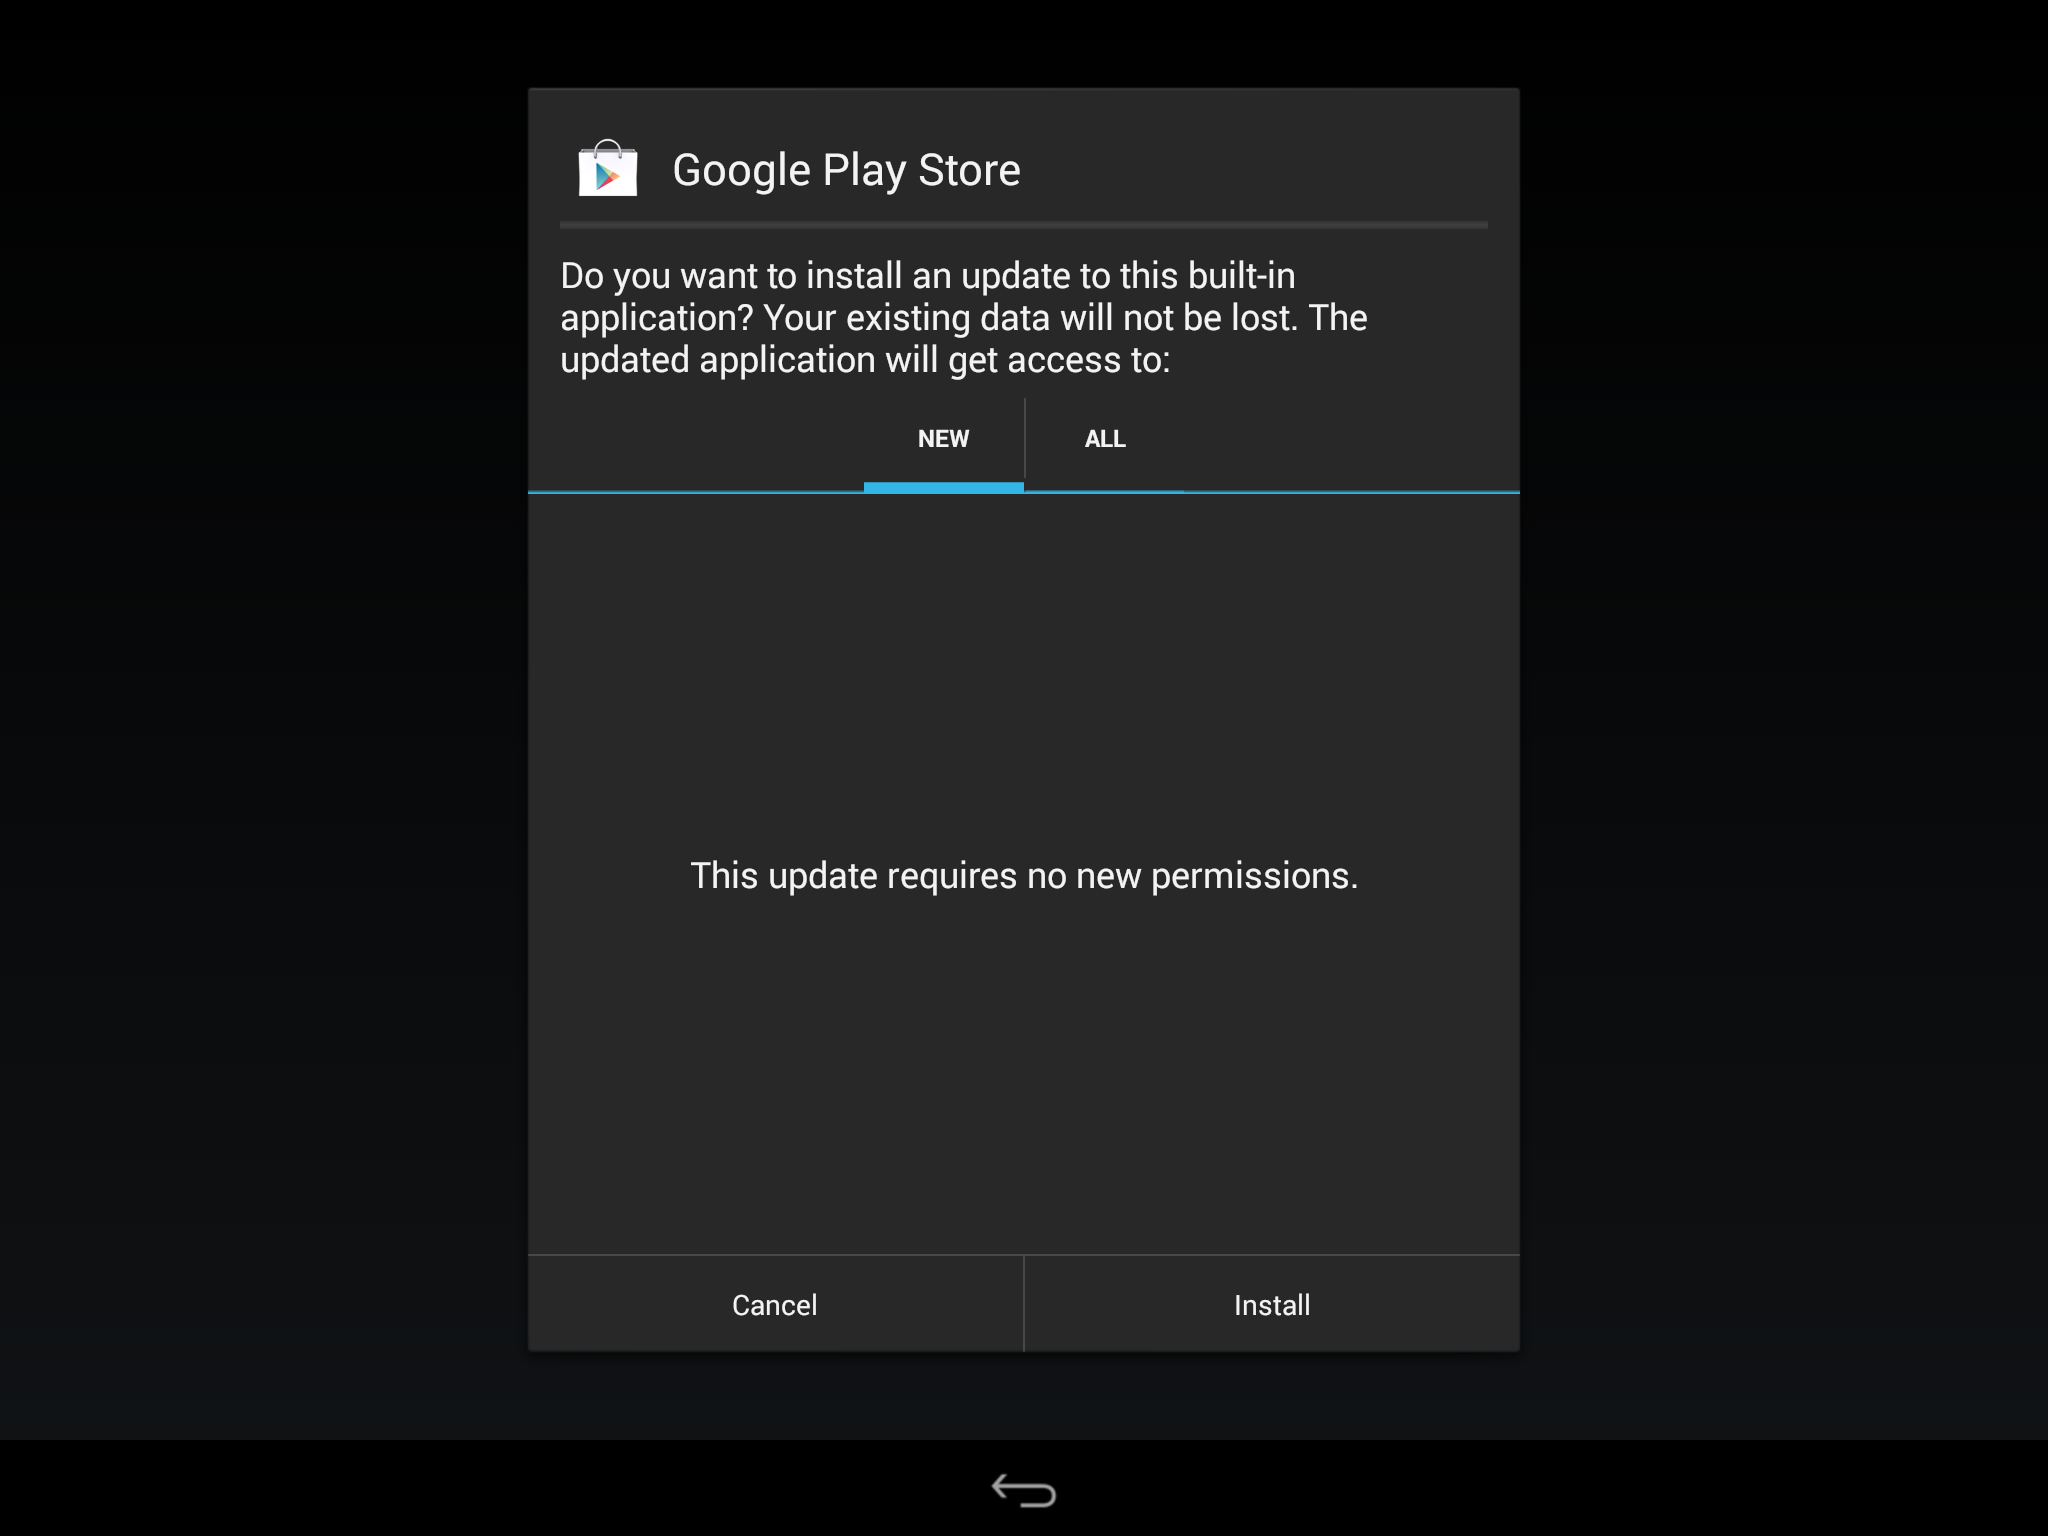 Google play store for proscan tablet : Silver 7 las vegas